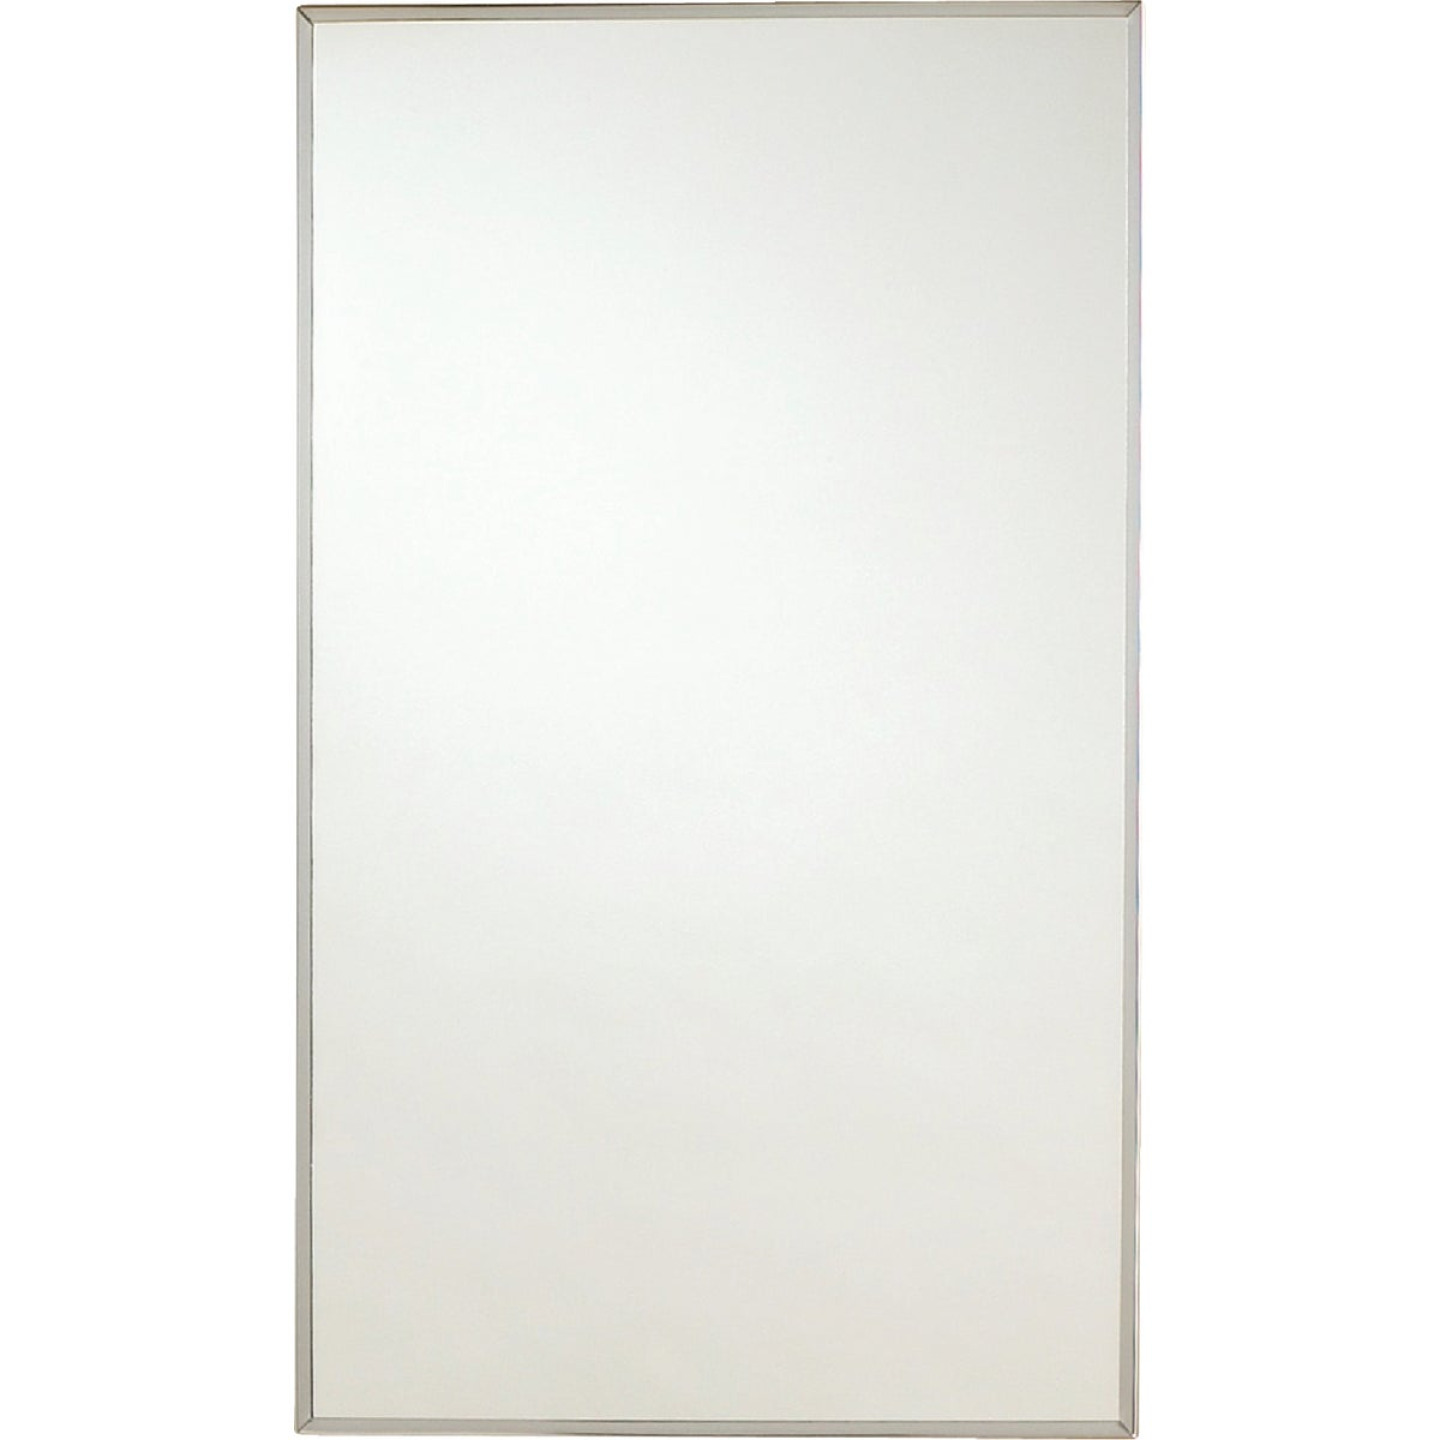 Zenith Stainless Steel 13 5 In W X 23 5 In H X 3 5 In D Single Mirror Surface Recess Mount Medicine Cabinet Connolly S